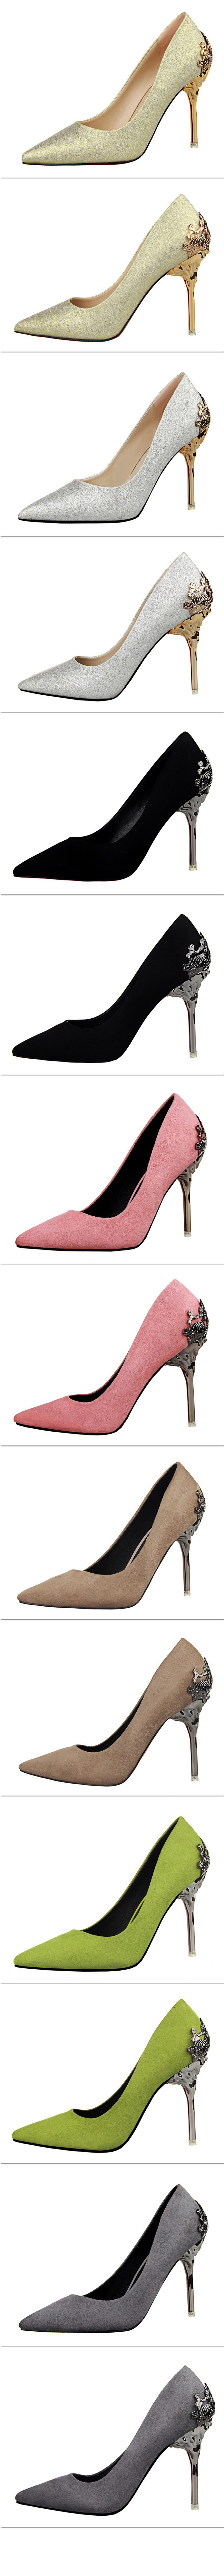 HTB12heVOVXXXXXAapXXq6xXFXXXh - BIGTREE Spring Autumn Scrub women pumps 10 CM Fine high heels metal Hollow Suede Pointed shoes